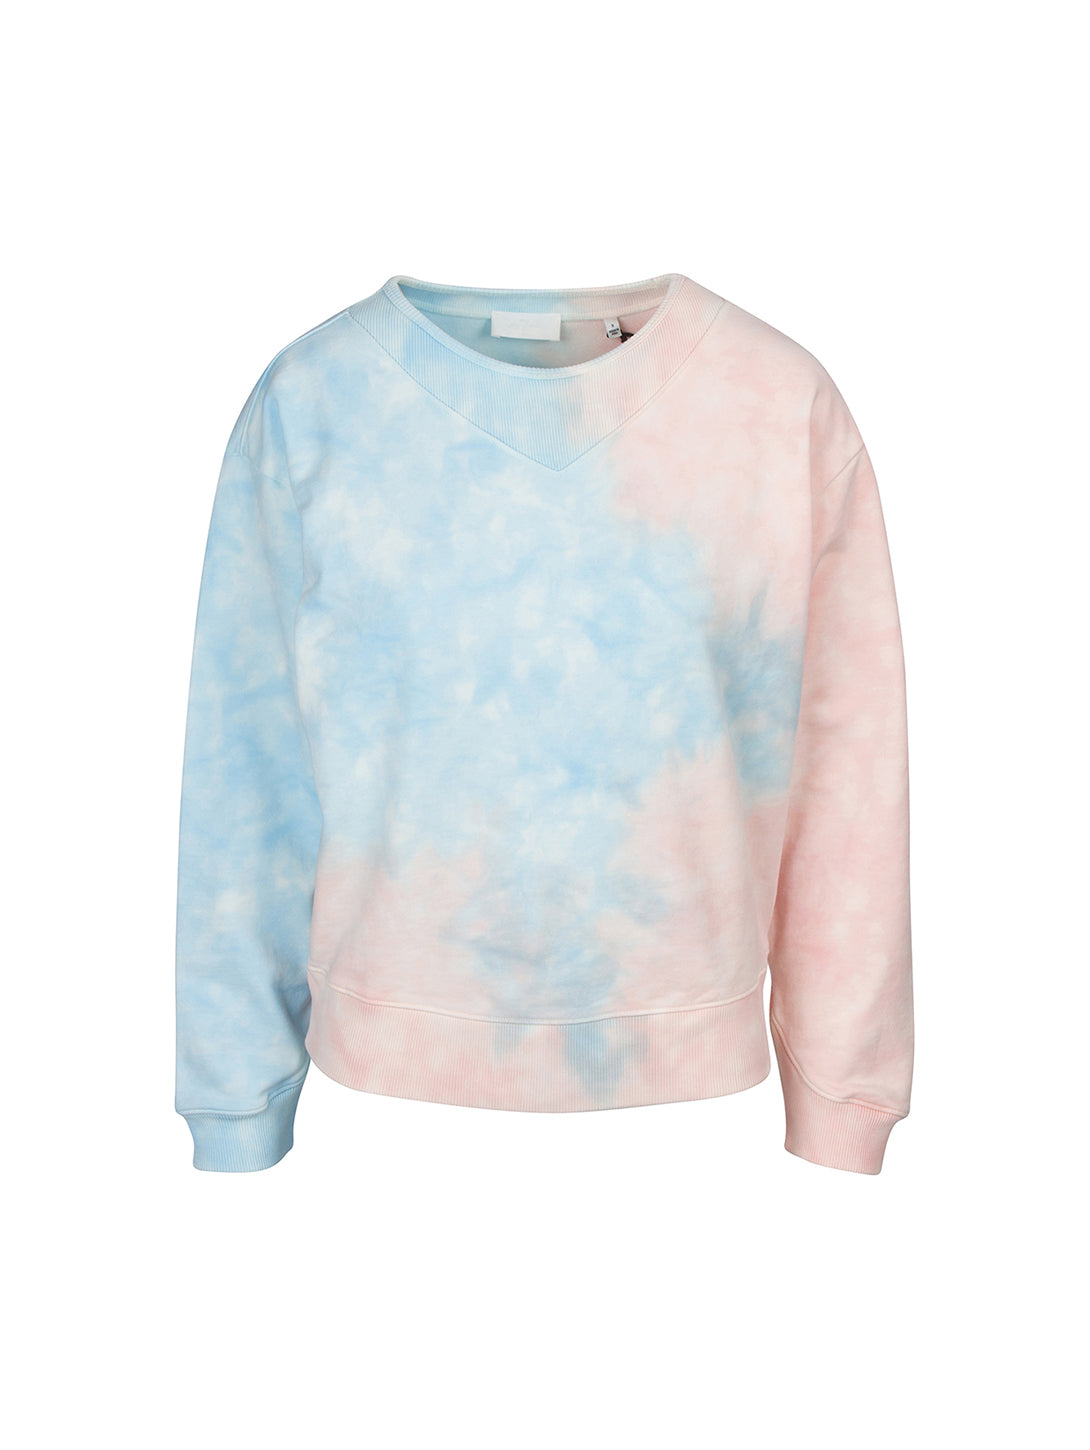 Tie Dye Crew Sweatshirt-Seven for all Mankind-Over the Rainbow